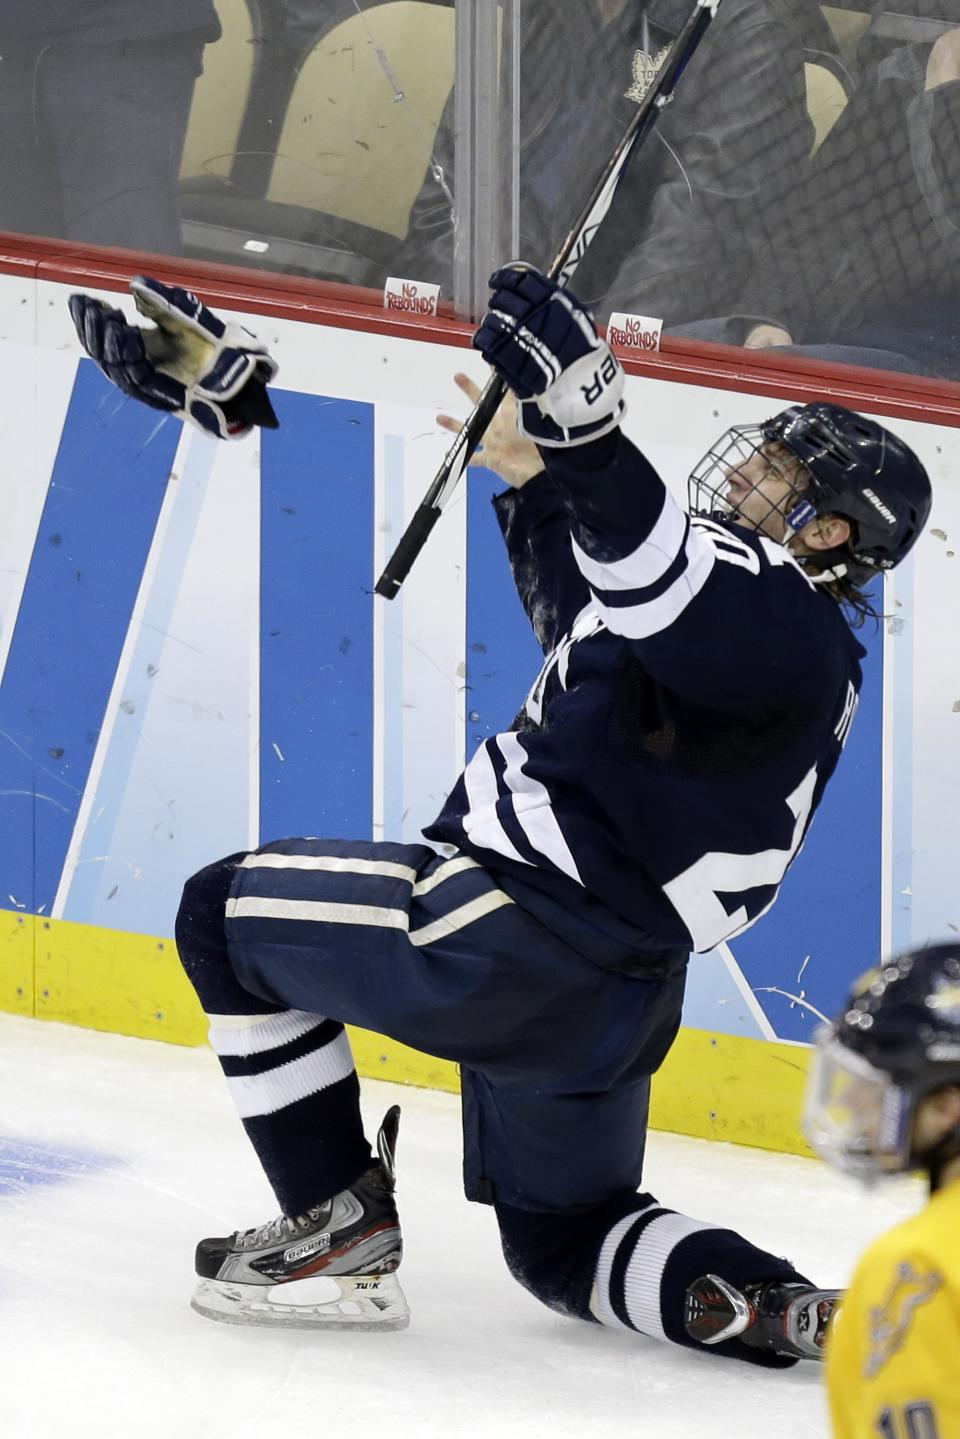 Yale's Jesse Root (20) celebrates his empty-net goal in the third period of the NCAA men's college hockey national championship game in Pittsburgh, Saturday, April 13, 2013. Yale defeated Quinnipiac 4-0. (AP Photo/Gene J. Puskar)